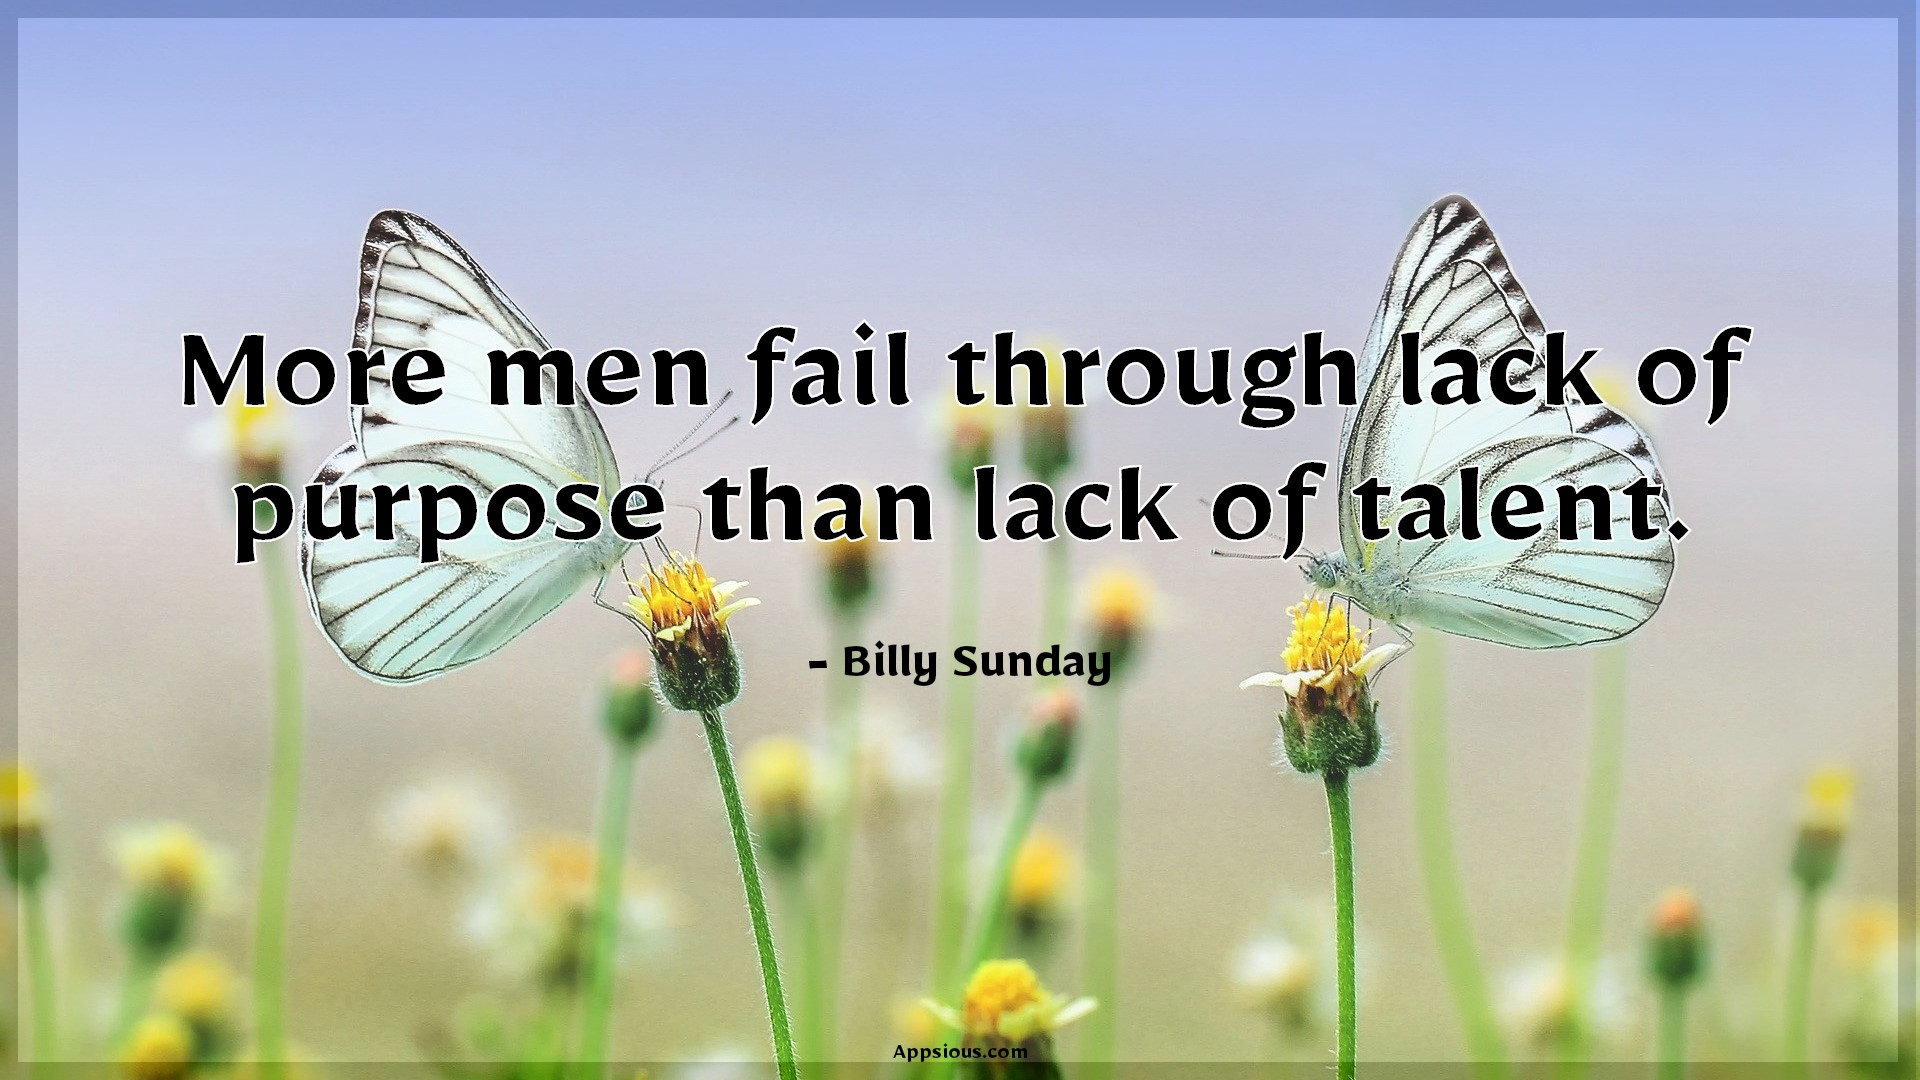 More men fail through lack of purpose than lack of talent.